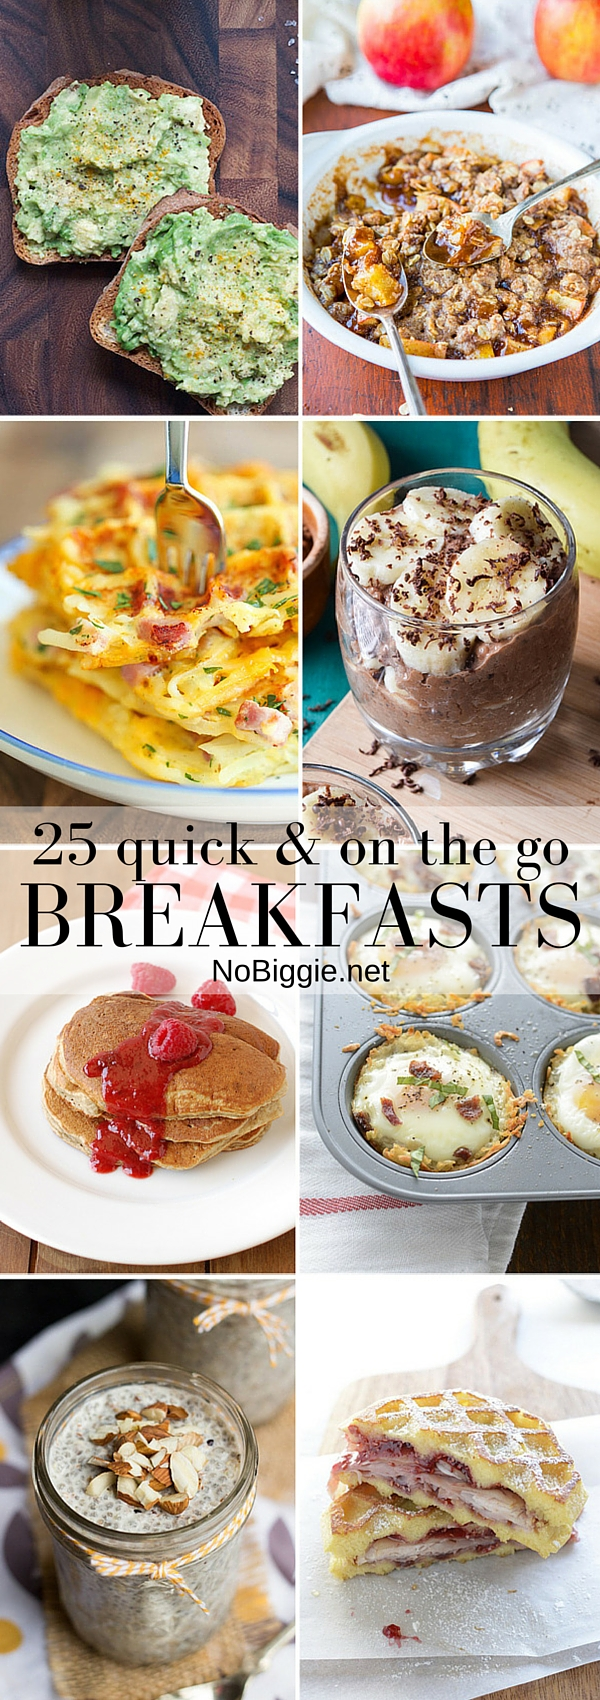 Quick & on th go breakfasts - great easy recipes for those busy mornings. #breakfasts #onthego #quickbreakfasts #easybreakfasts #breakfastrecipes